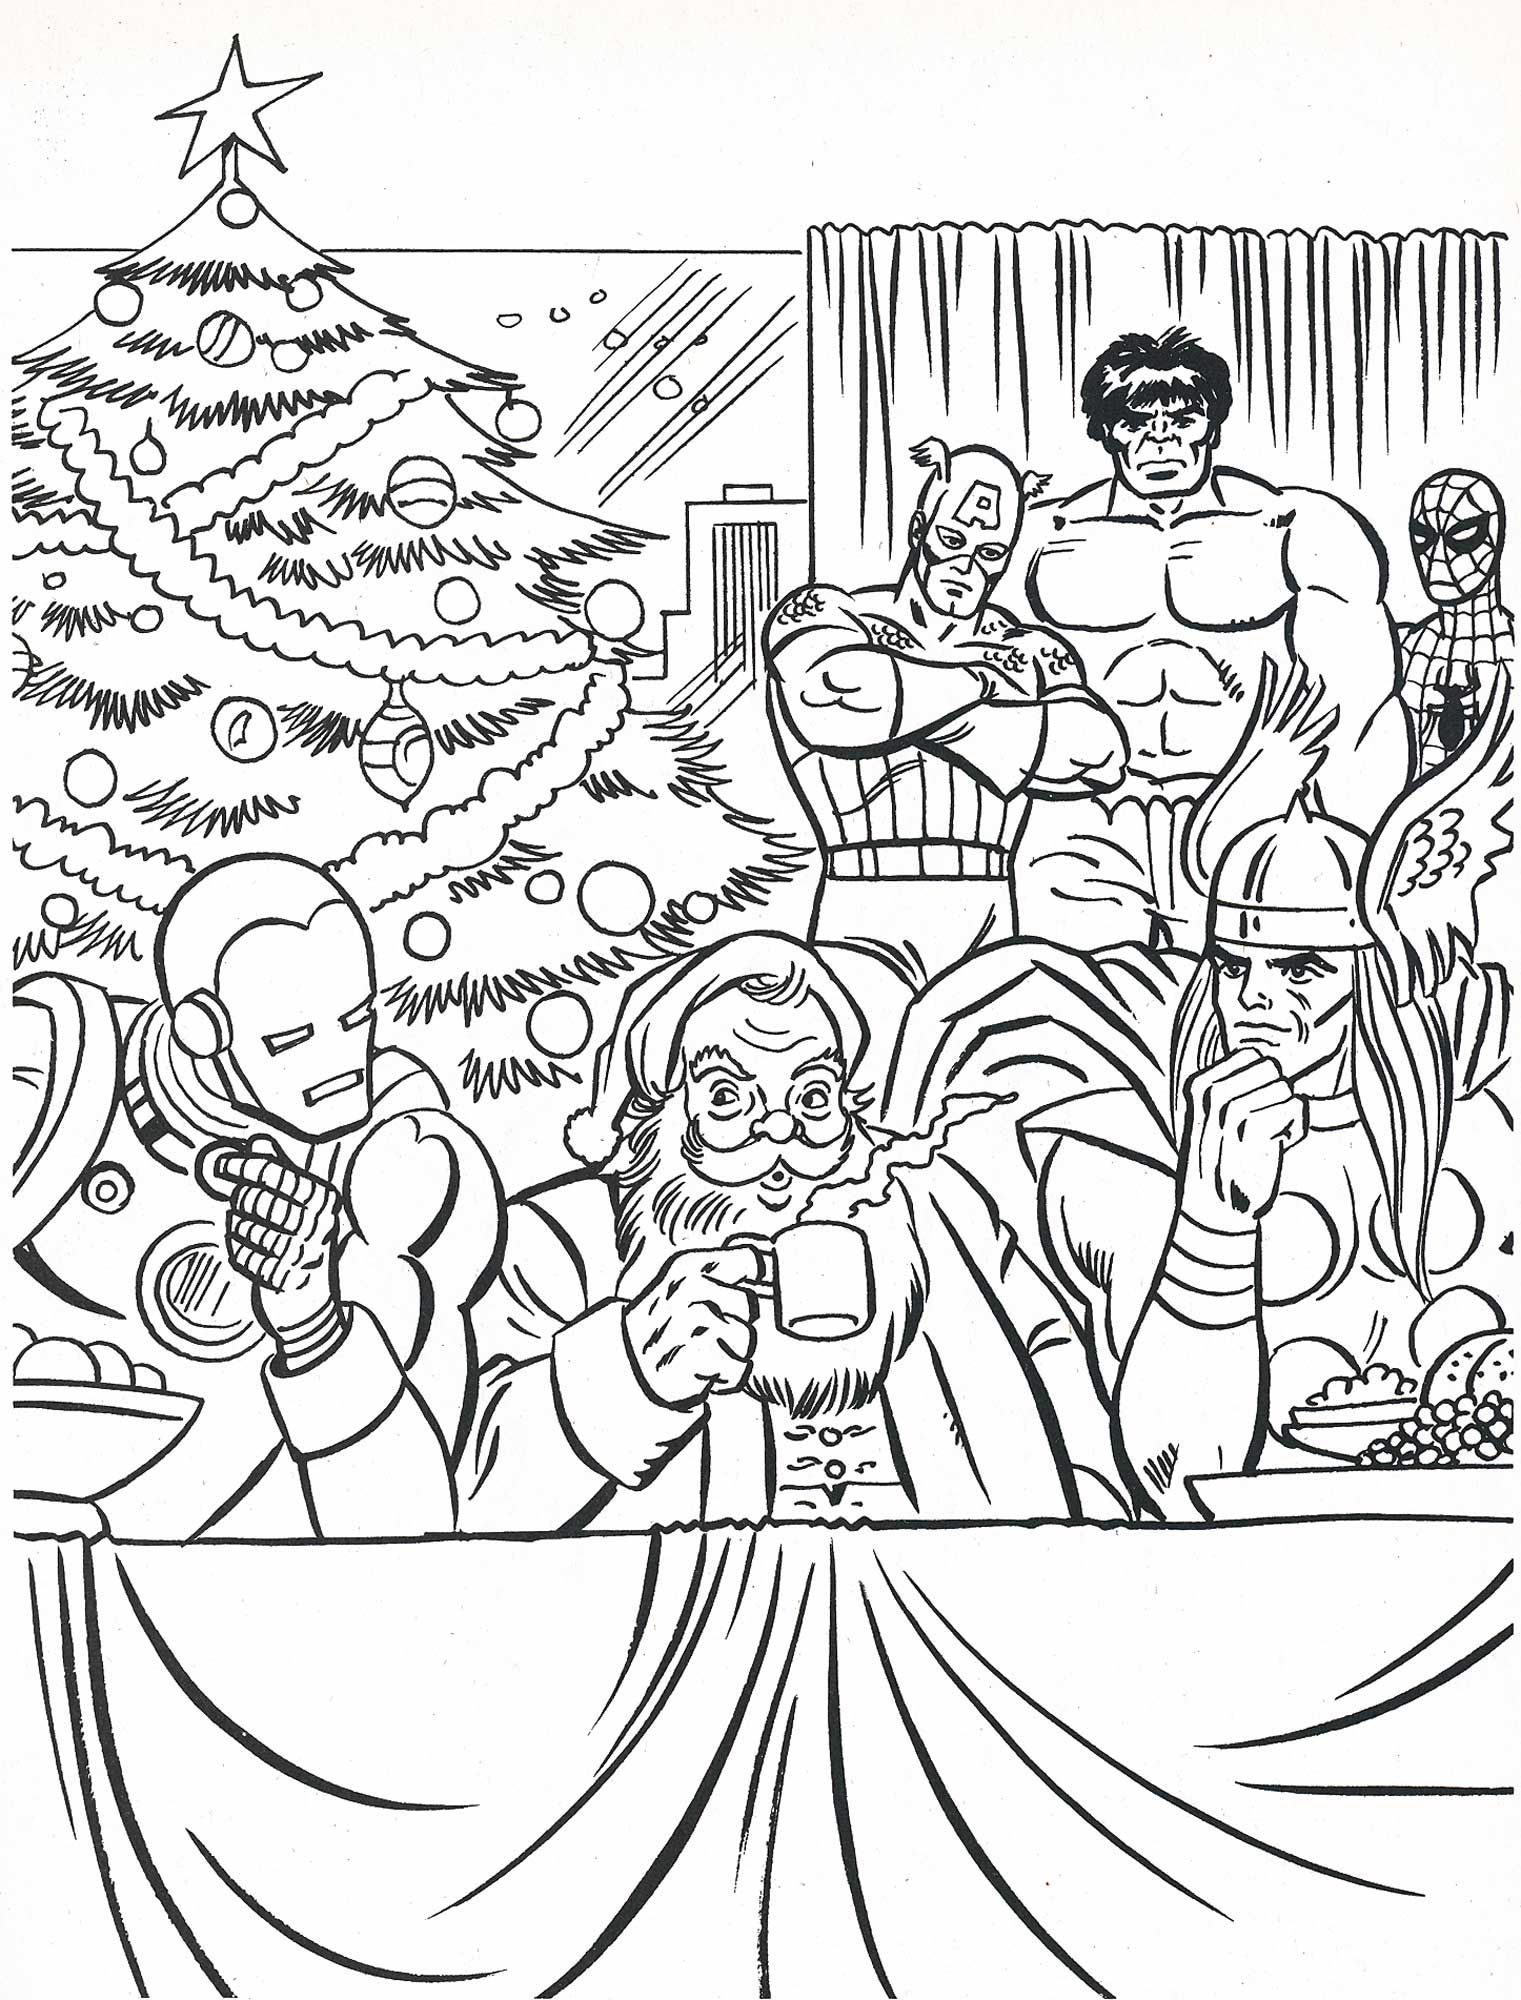 Superhero Coloring Pages Marvel 4 Jpg 1521 2000 Avengers Coloring Pages Superhero Coloring Pages Christmas Coloring Pages